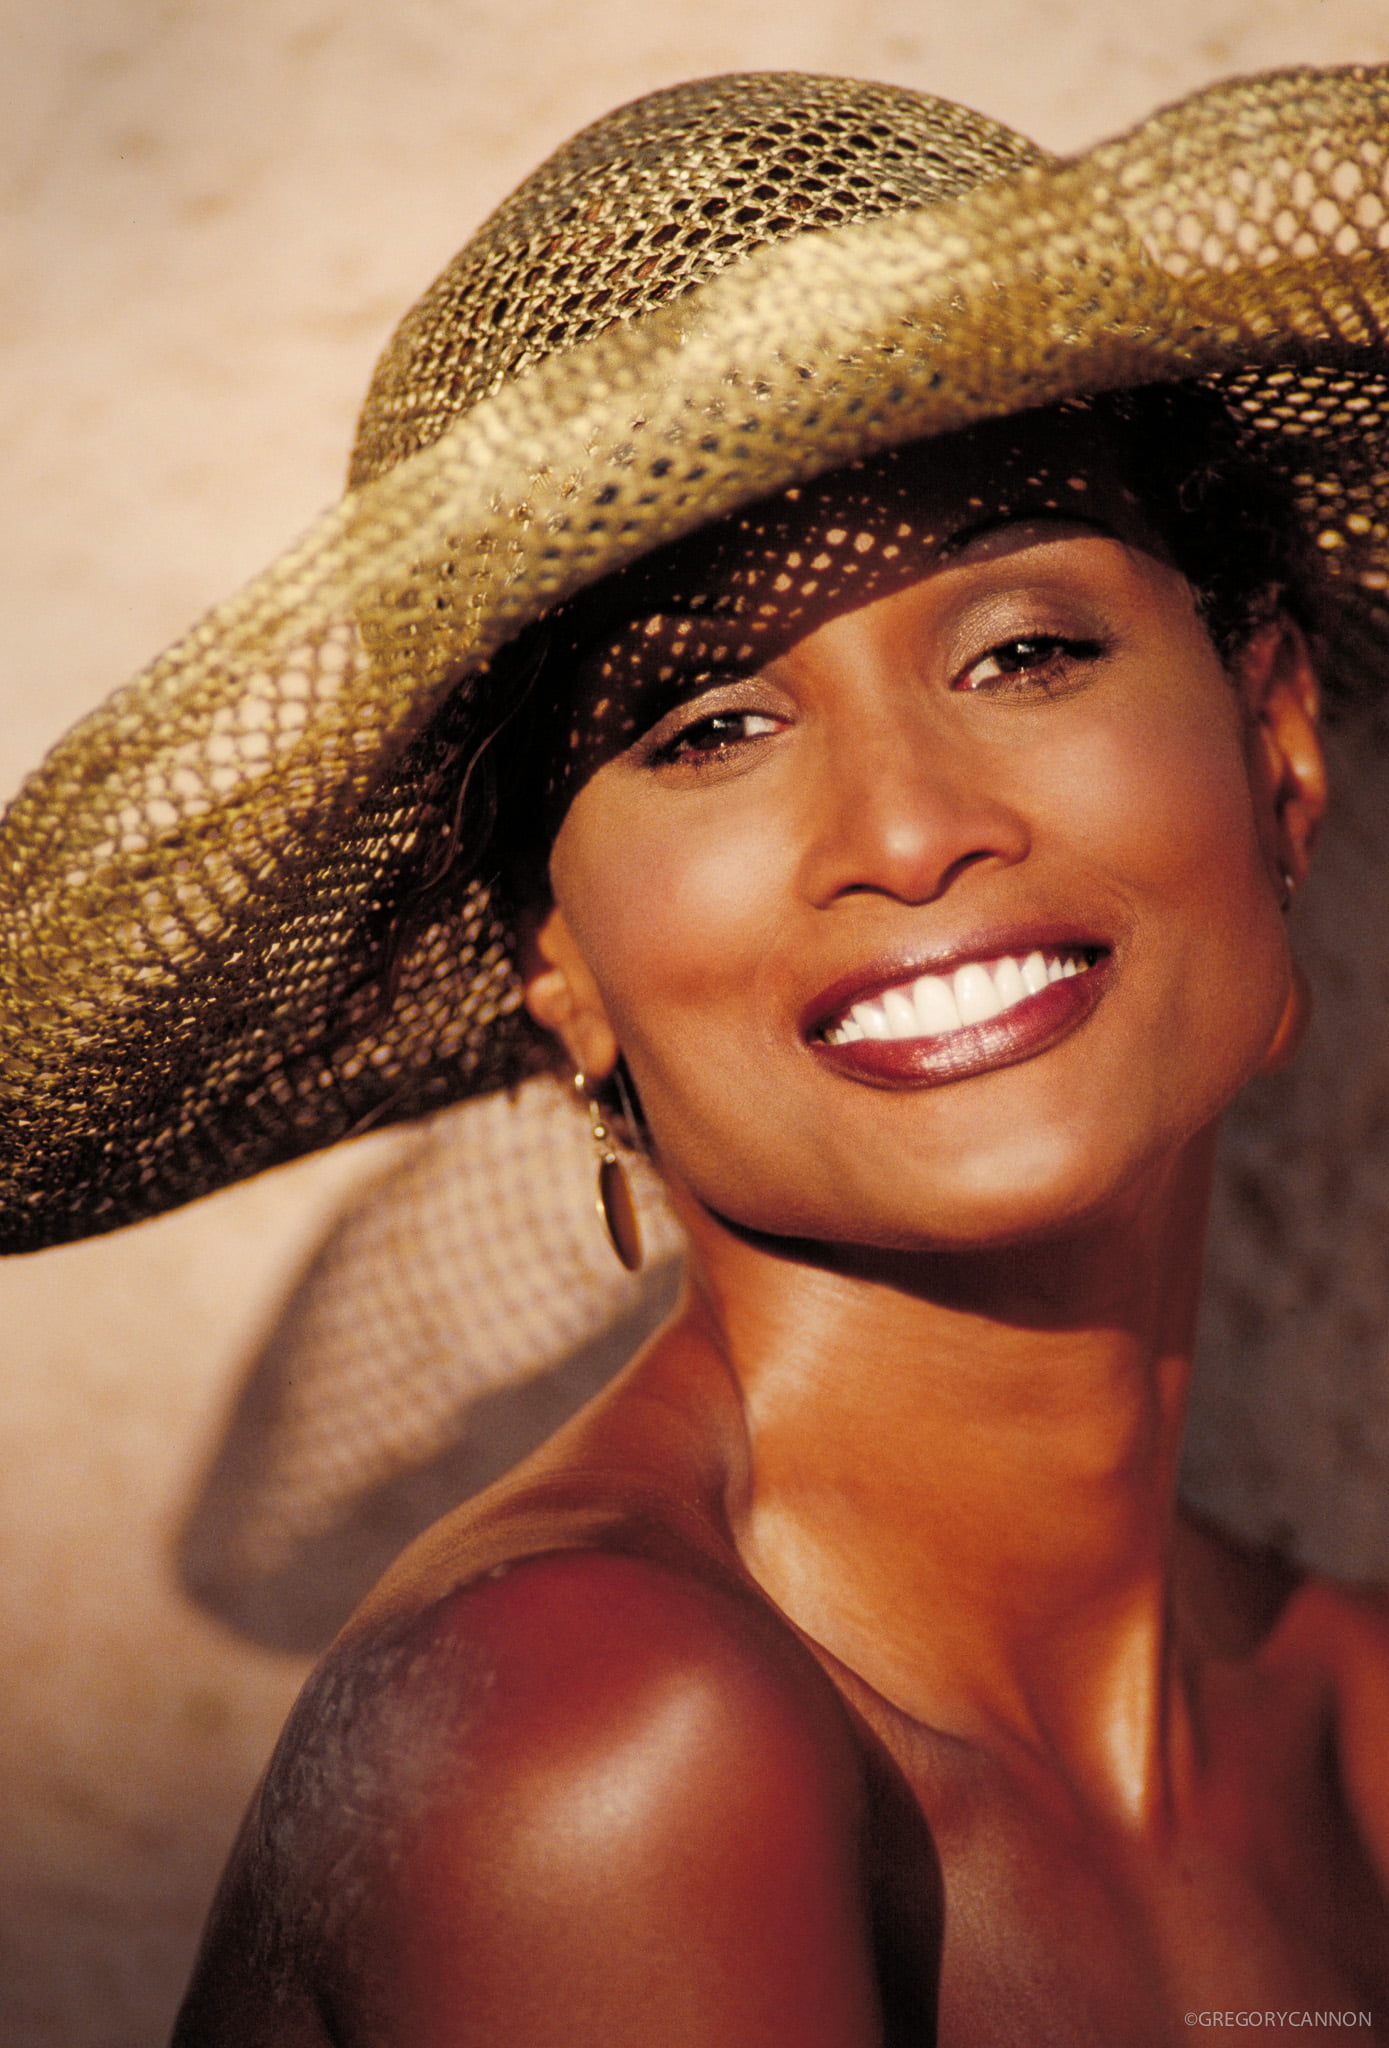 Beverly Johnson for Paramount Pictures by Gregory Cannon